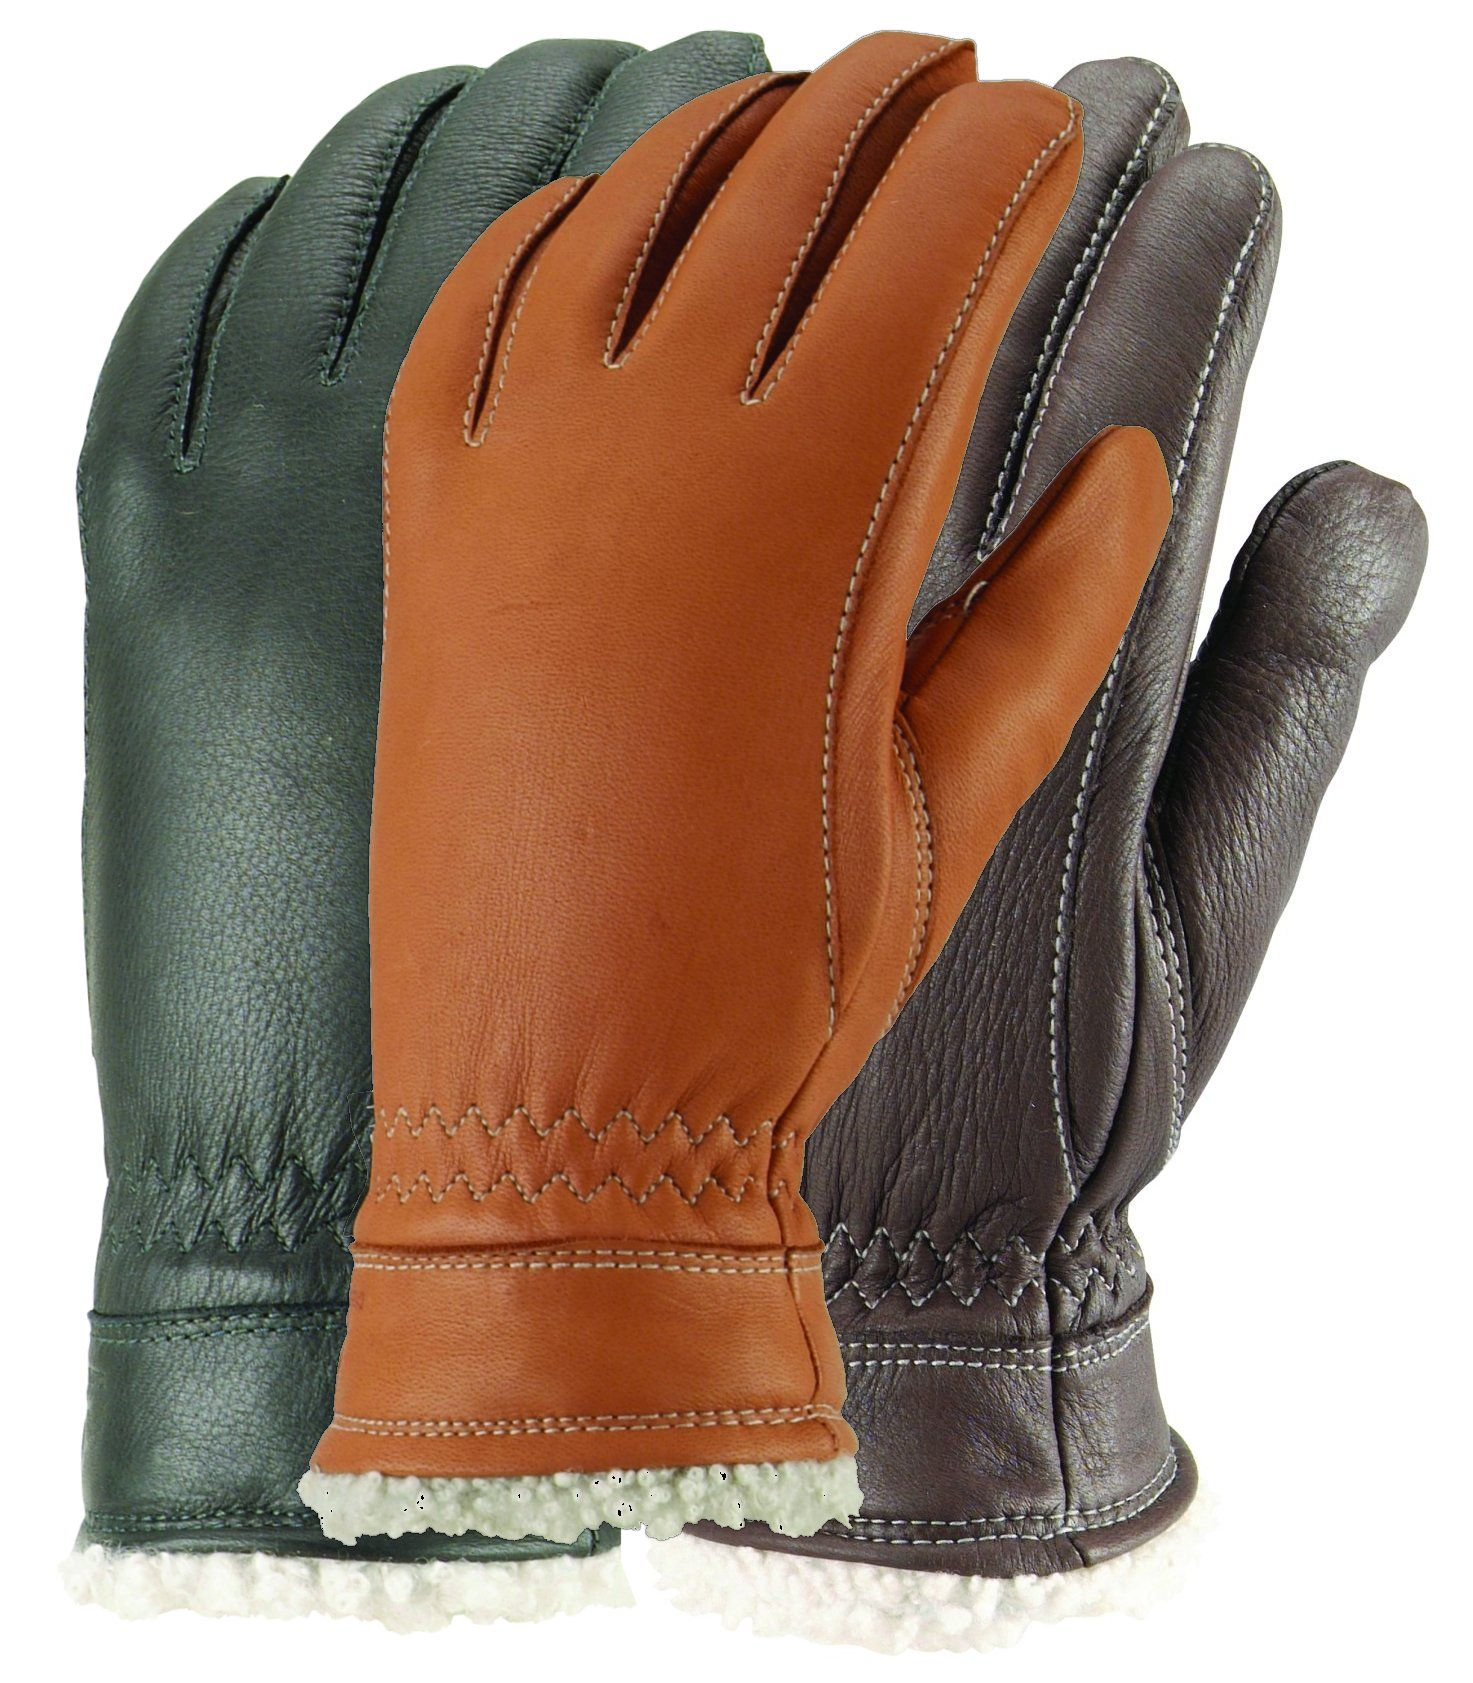 Hestra mens gloves - Women S Casual Deerskin Gloves With Lamb Shearling Cuff By Hestra Free Usa Shipping At Leather